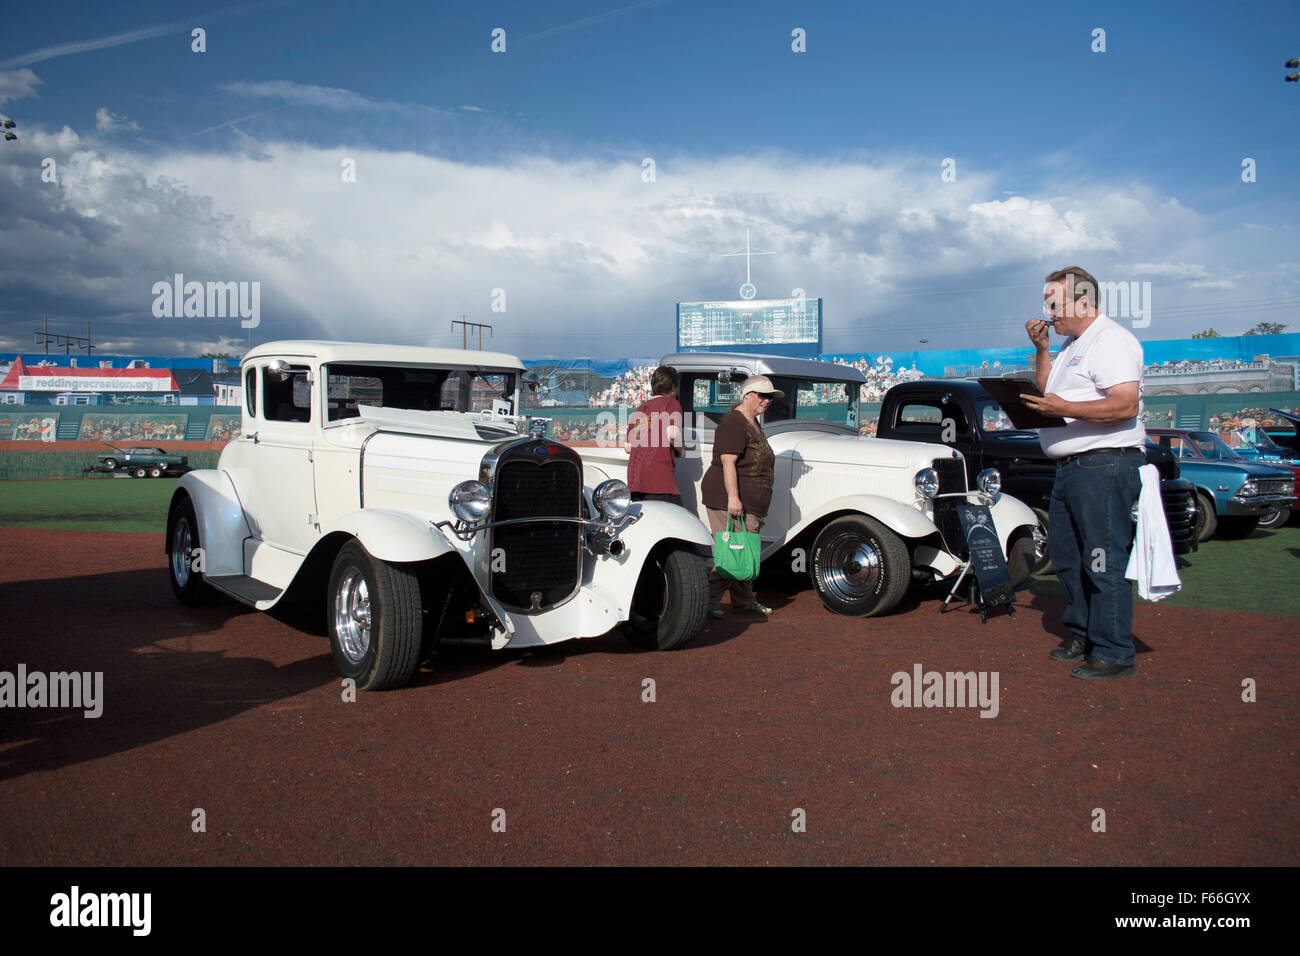 Vintage Collectable Classic Car Stock Photos & Vintage Collectable ...